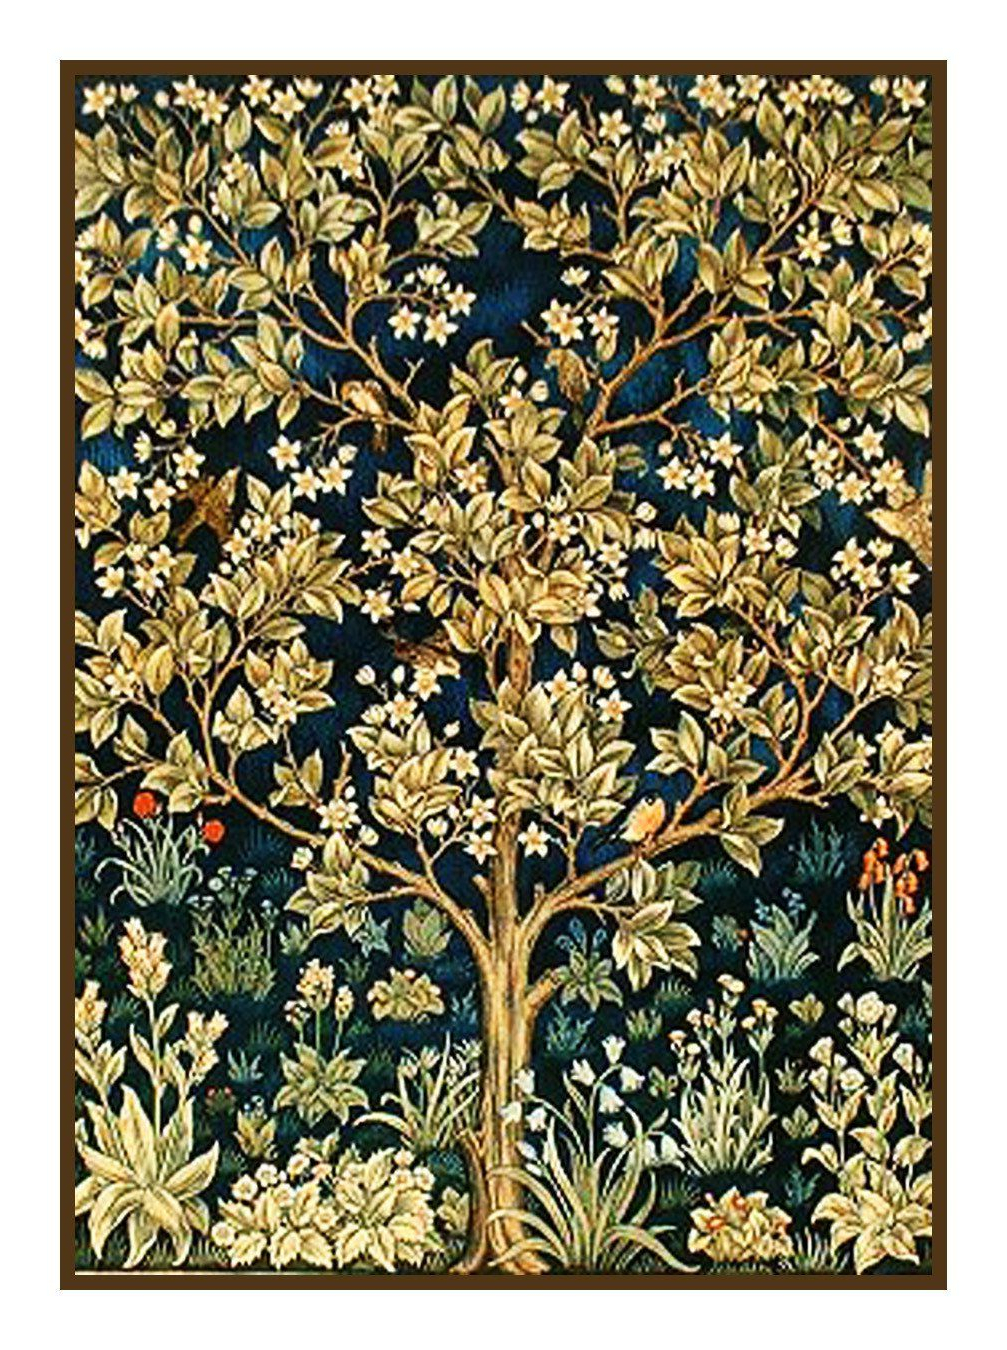 Well Known Tree Of Life Detail William Morris Counted Cross Stitch Or With Regard To Blended Fabric Tree Of Life, William Morris Wall Hangings (View 15 of 20)